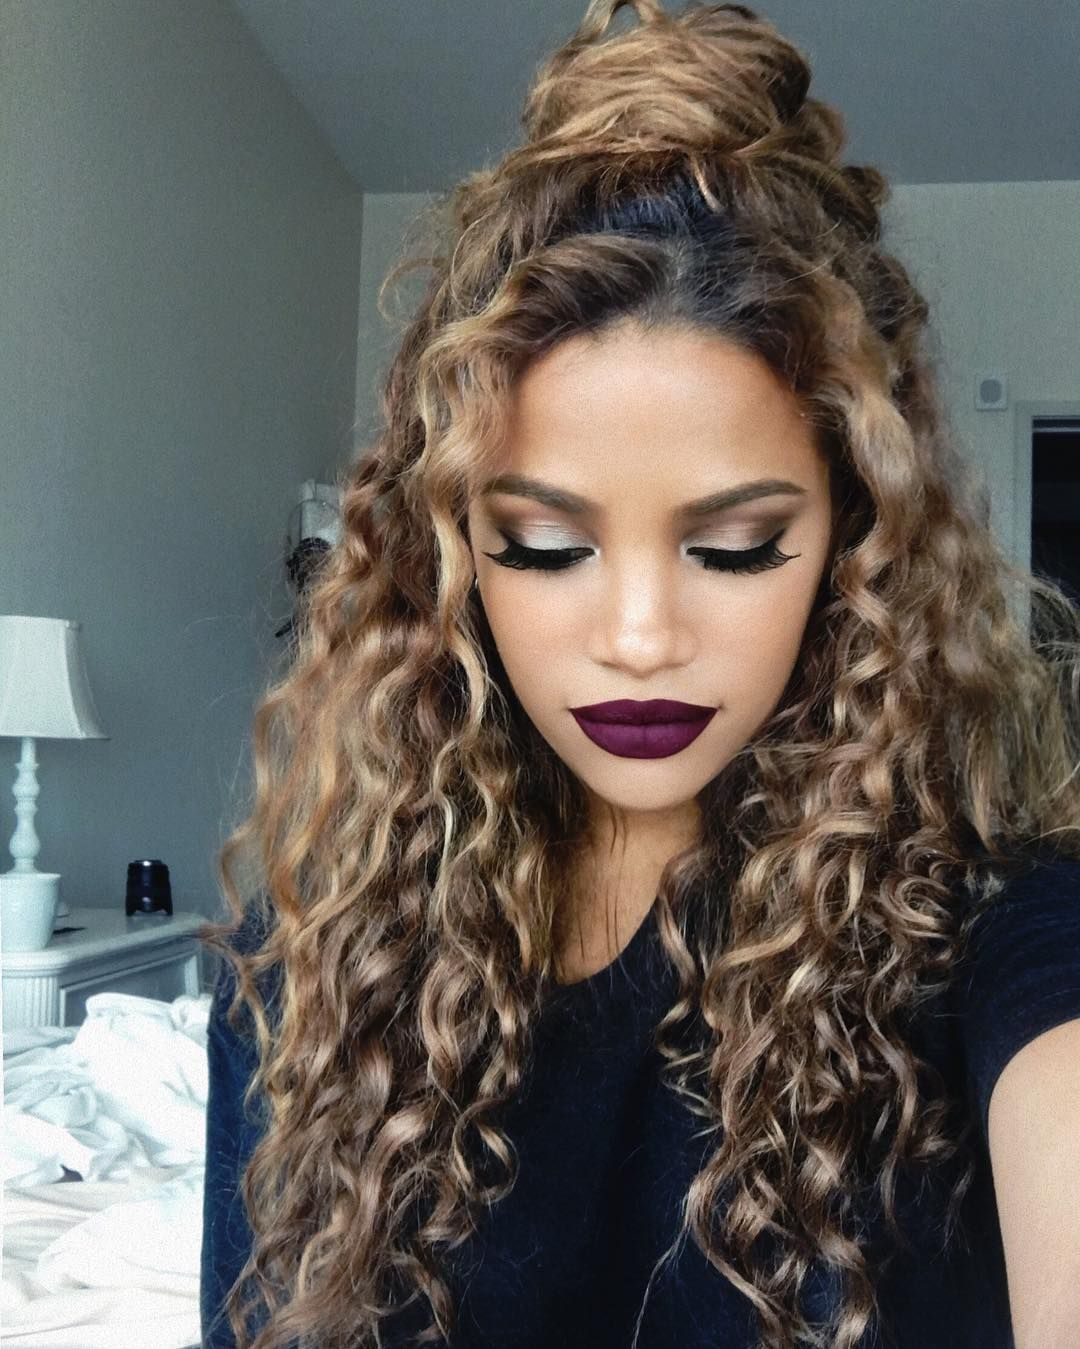 Curly Hair Style Dyed Hair Hot Hair Styles Hair Hacks Curly